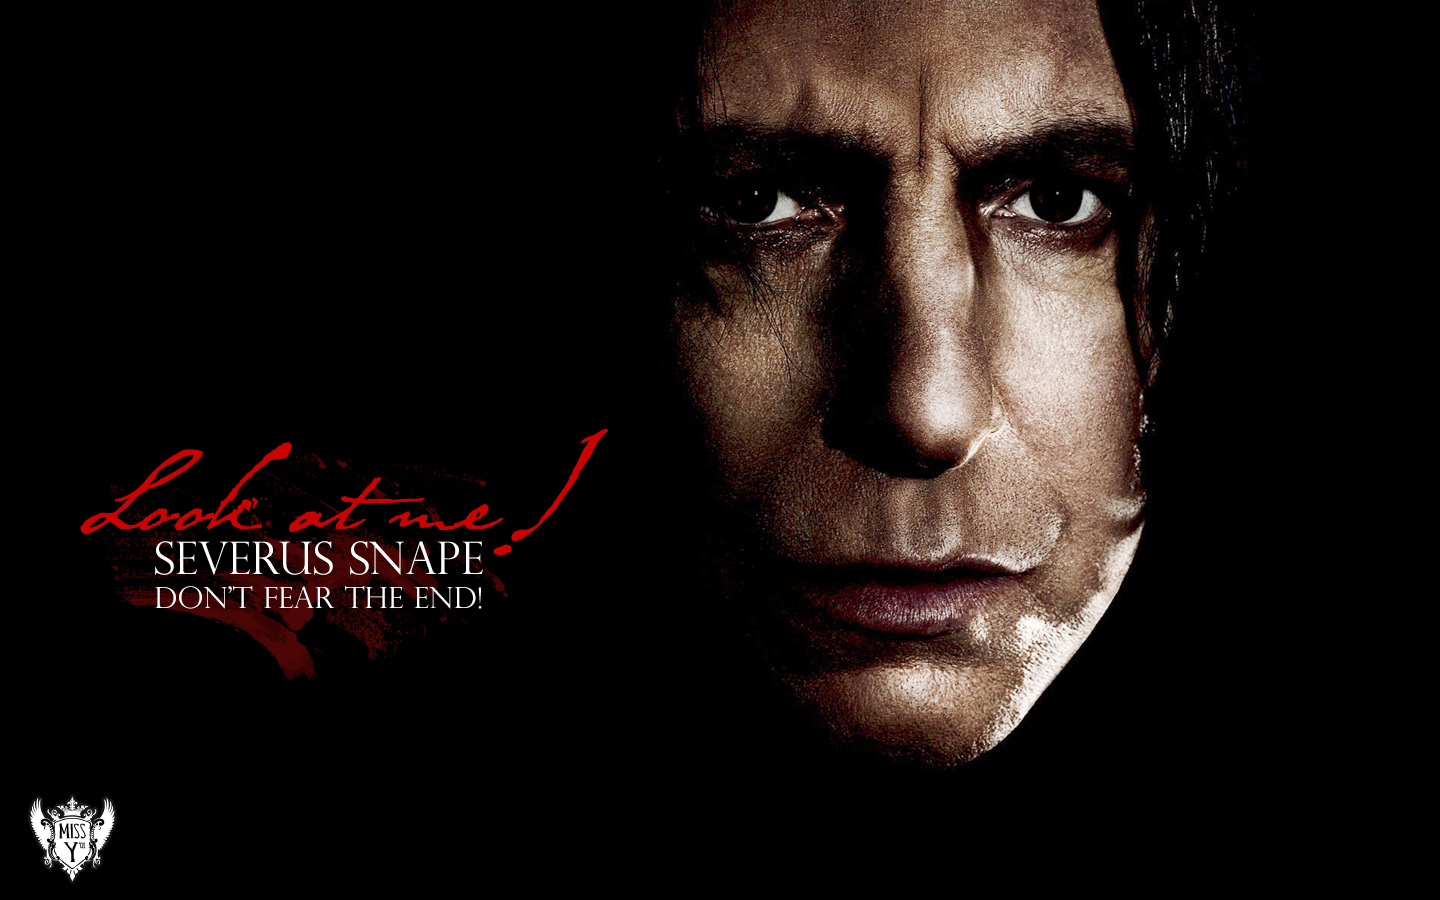 Severus Snape images Severus Snape - Look at me HD ...